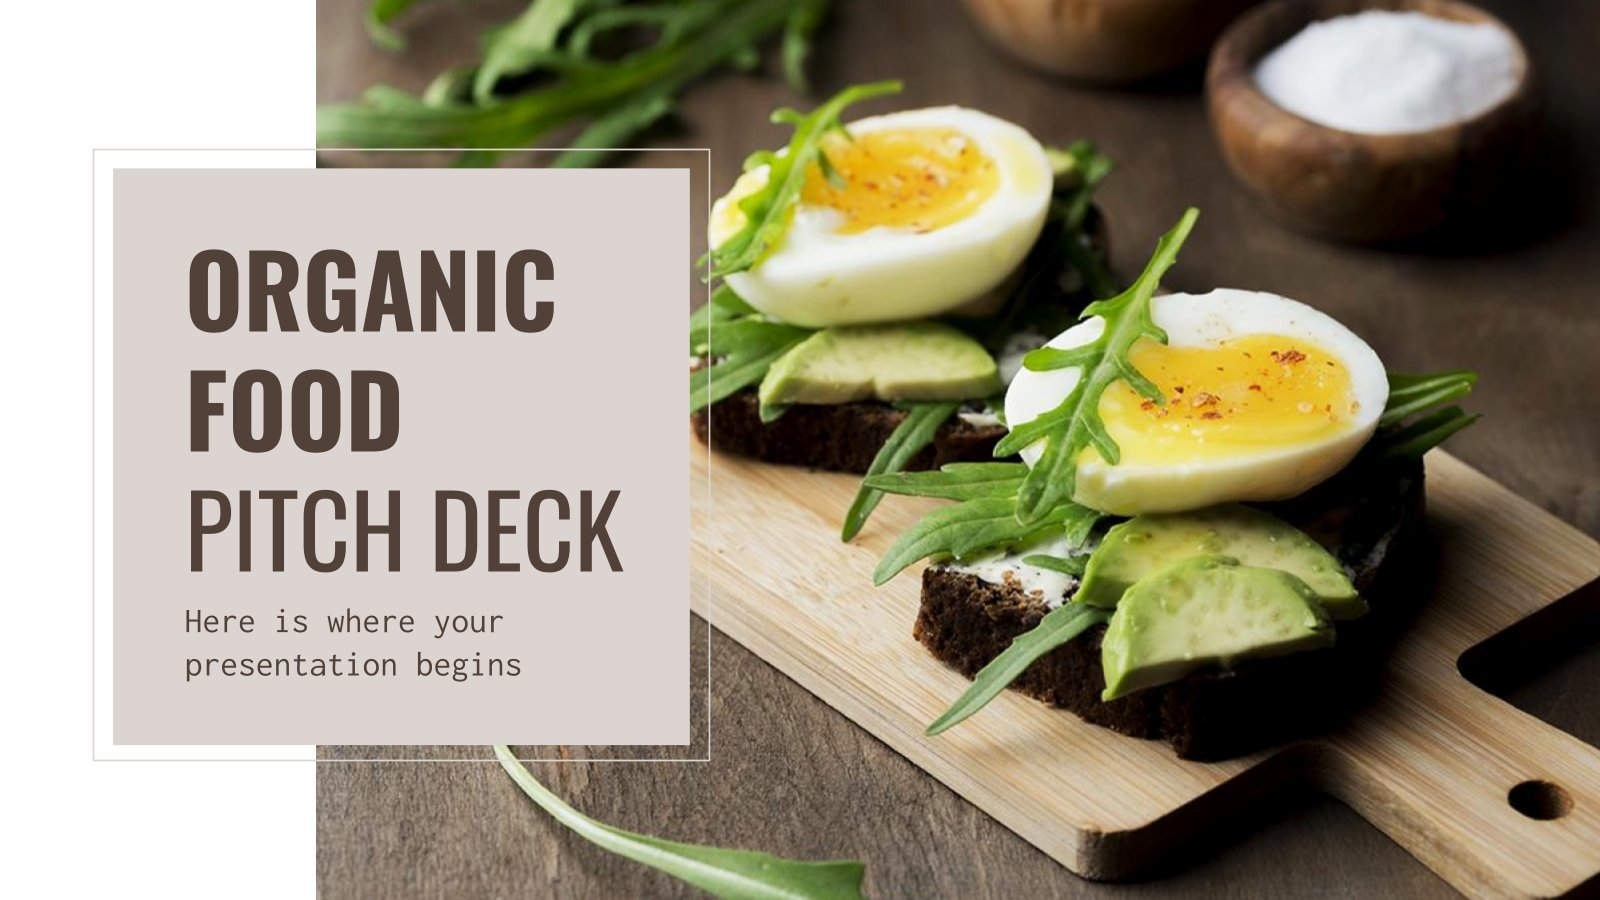 Organic Food Pitch Deck presentation template